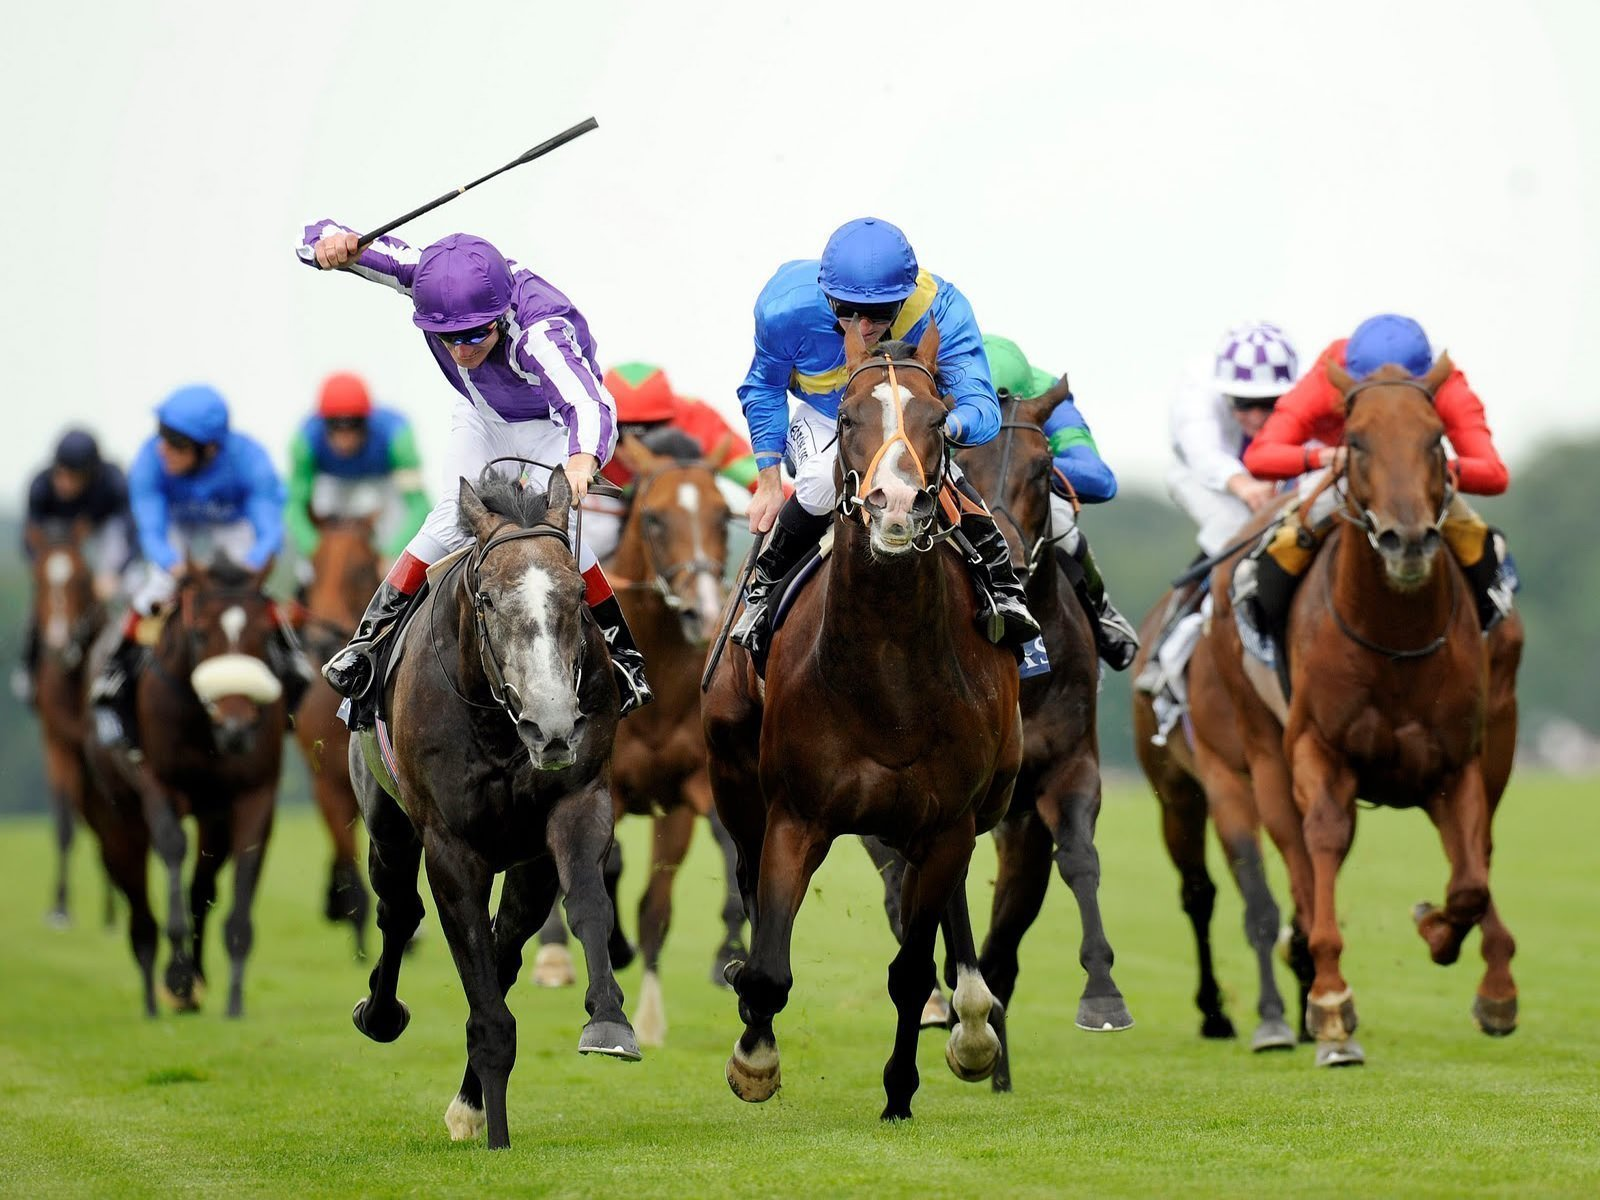 Win Great Horse Game Prizes In World's Greatest Horse Races